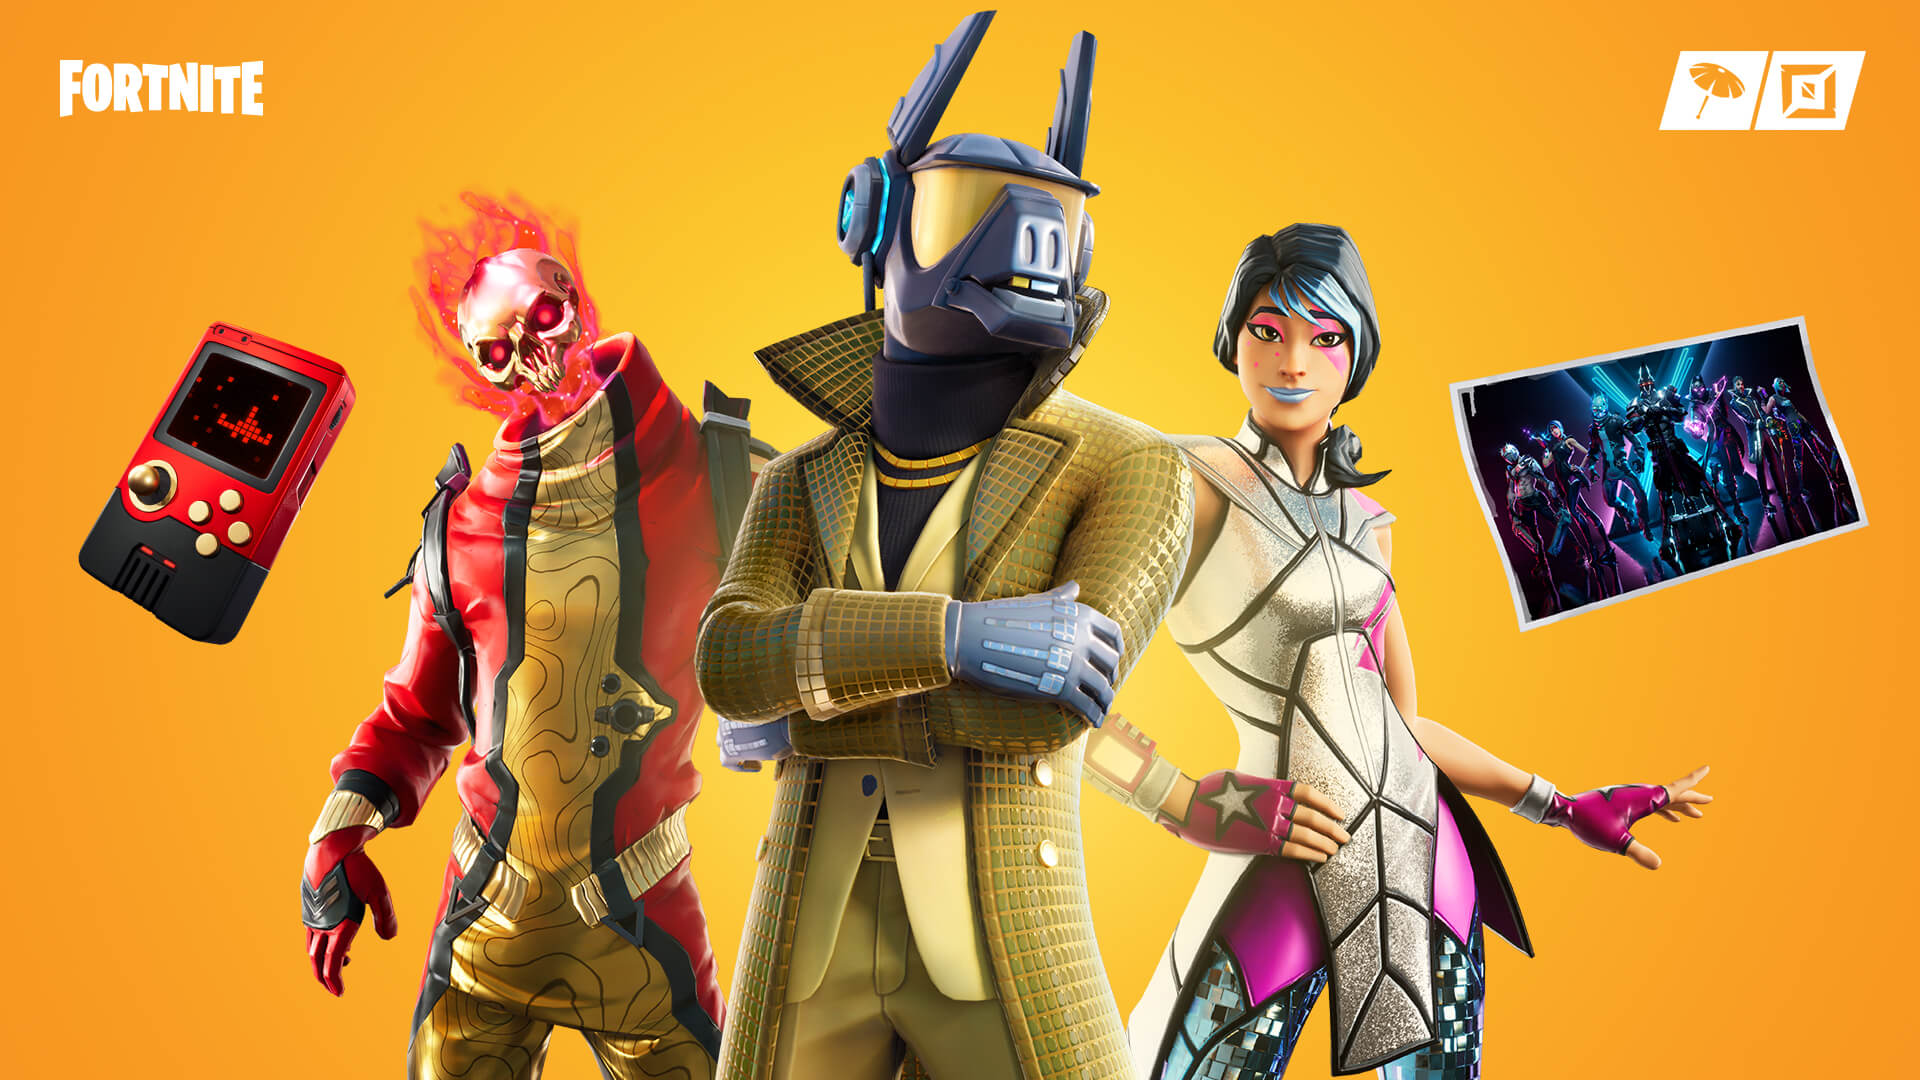 Fortnite_patch-notes_v10-40-1-patch-notes_br-header-v10-40-1-patch-notes_10BR_OvertimeChalleng...jpg